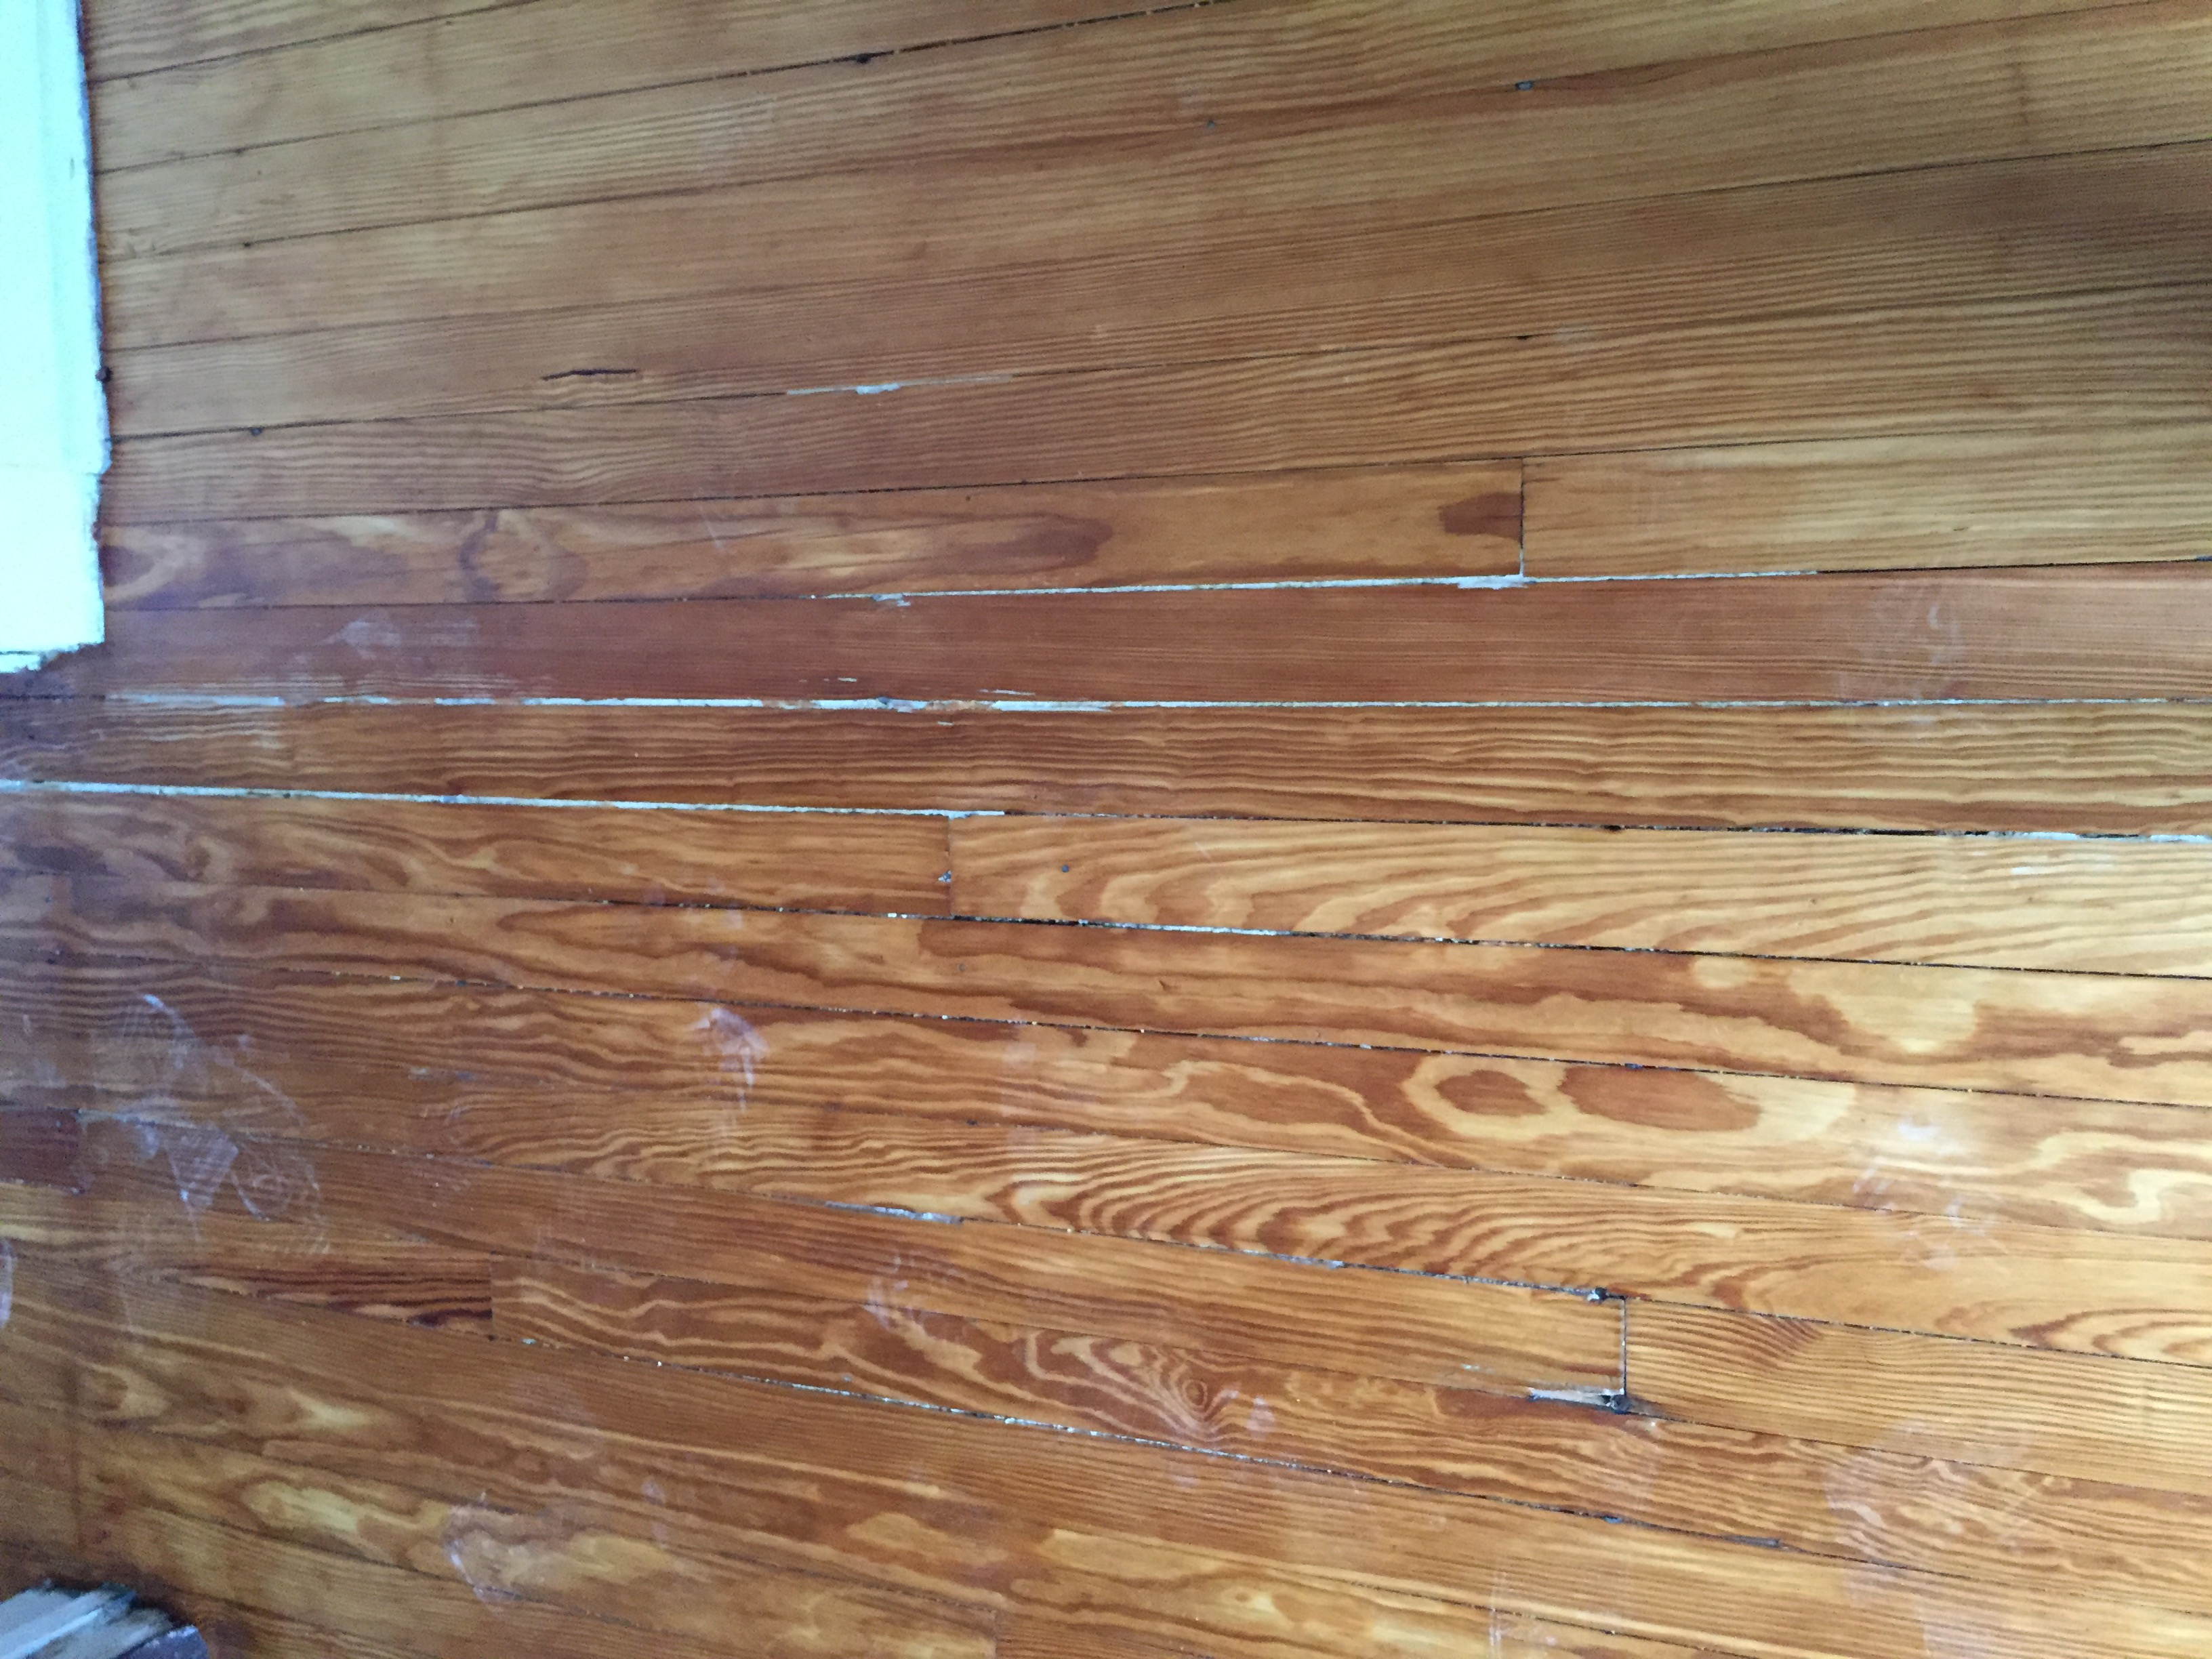 Help how to repair these pine hardwood floor 100years old for Hardwood floors repair